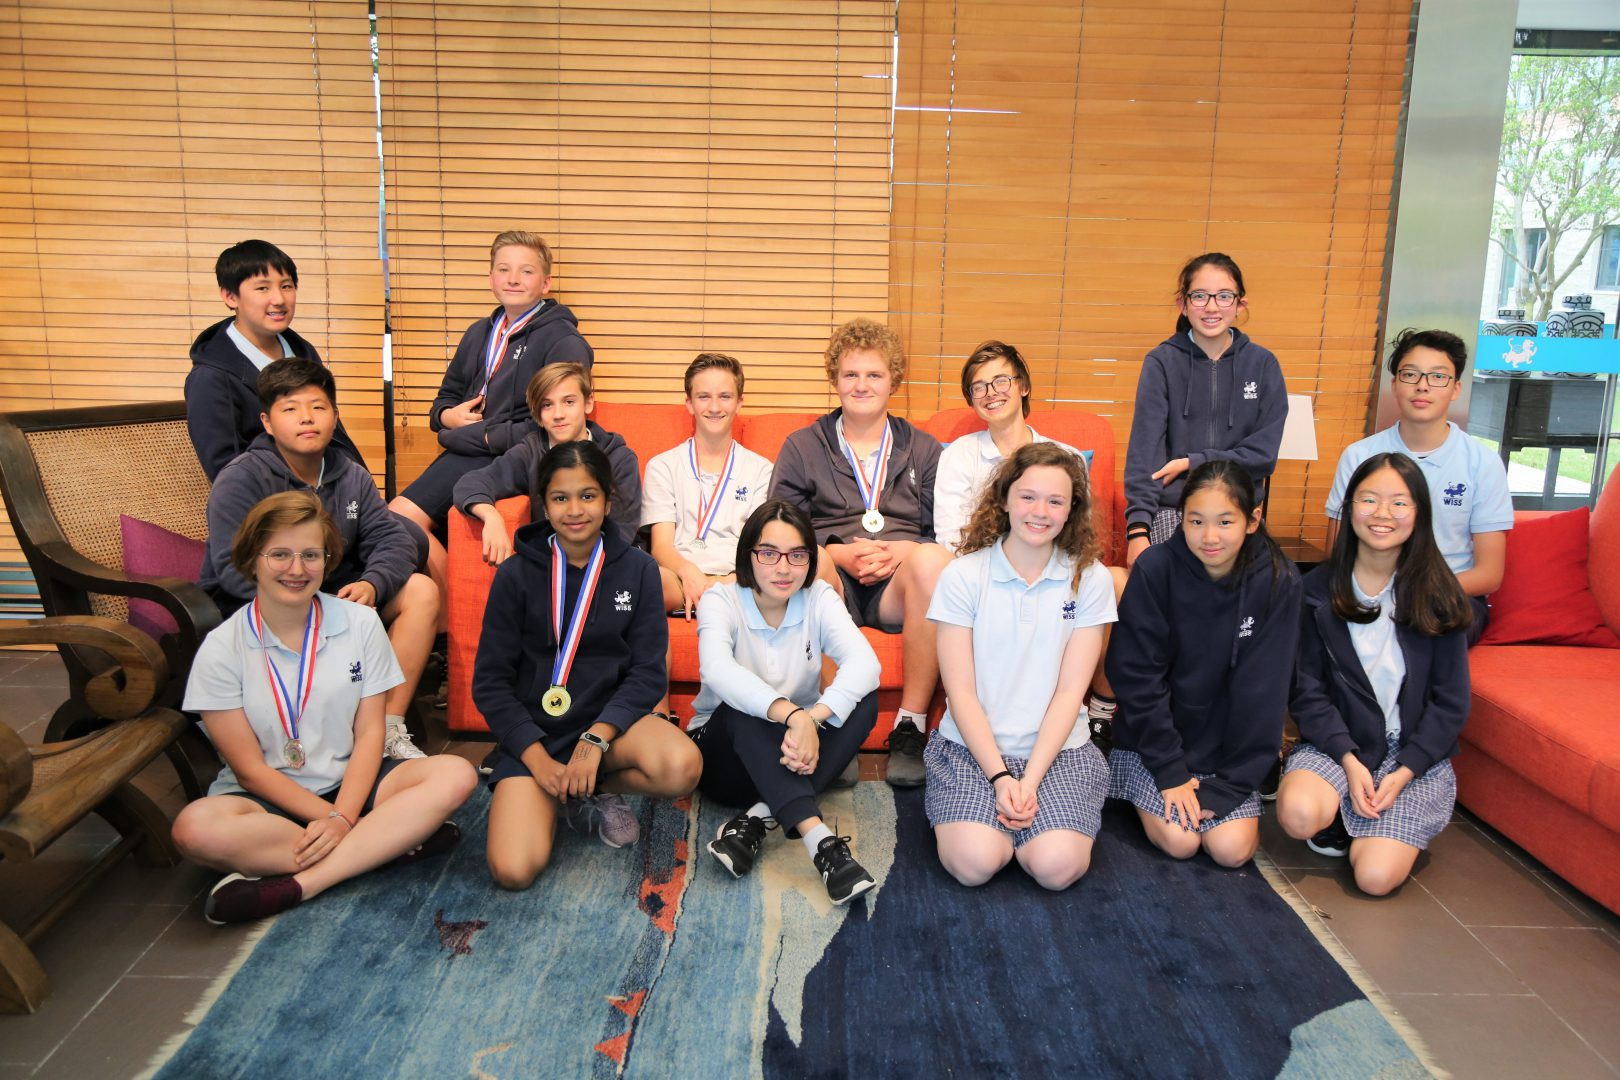 WISS students with their medals